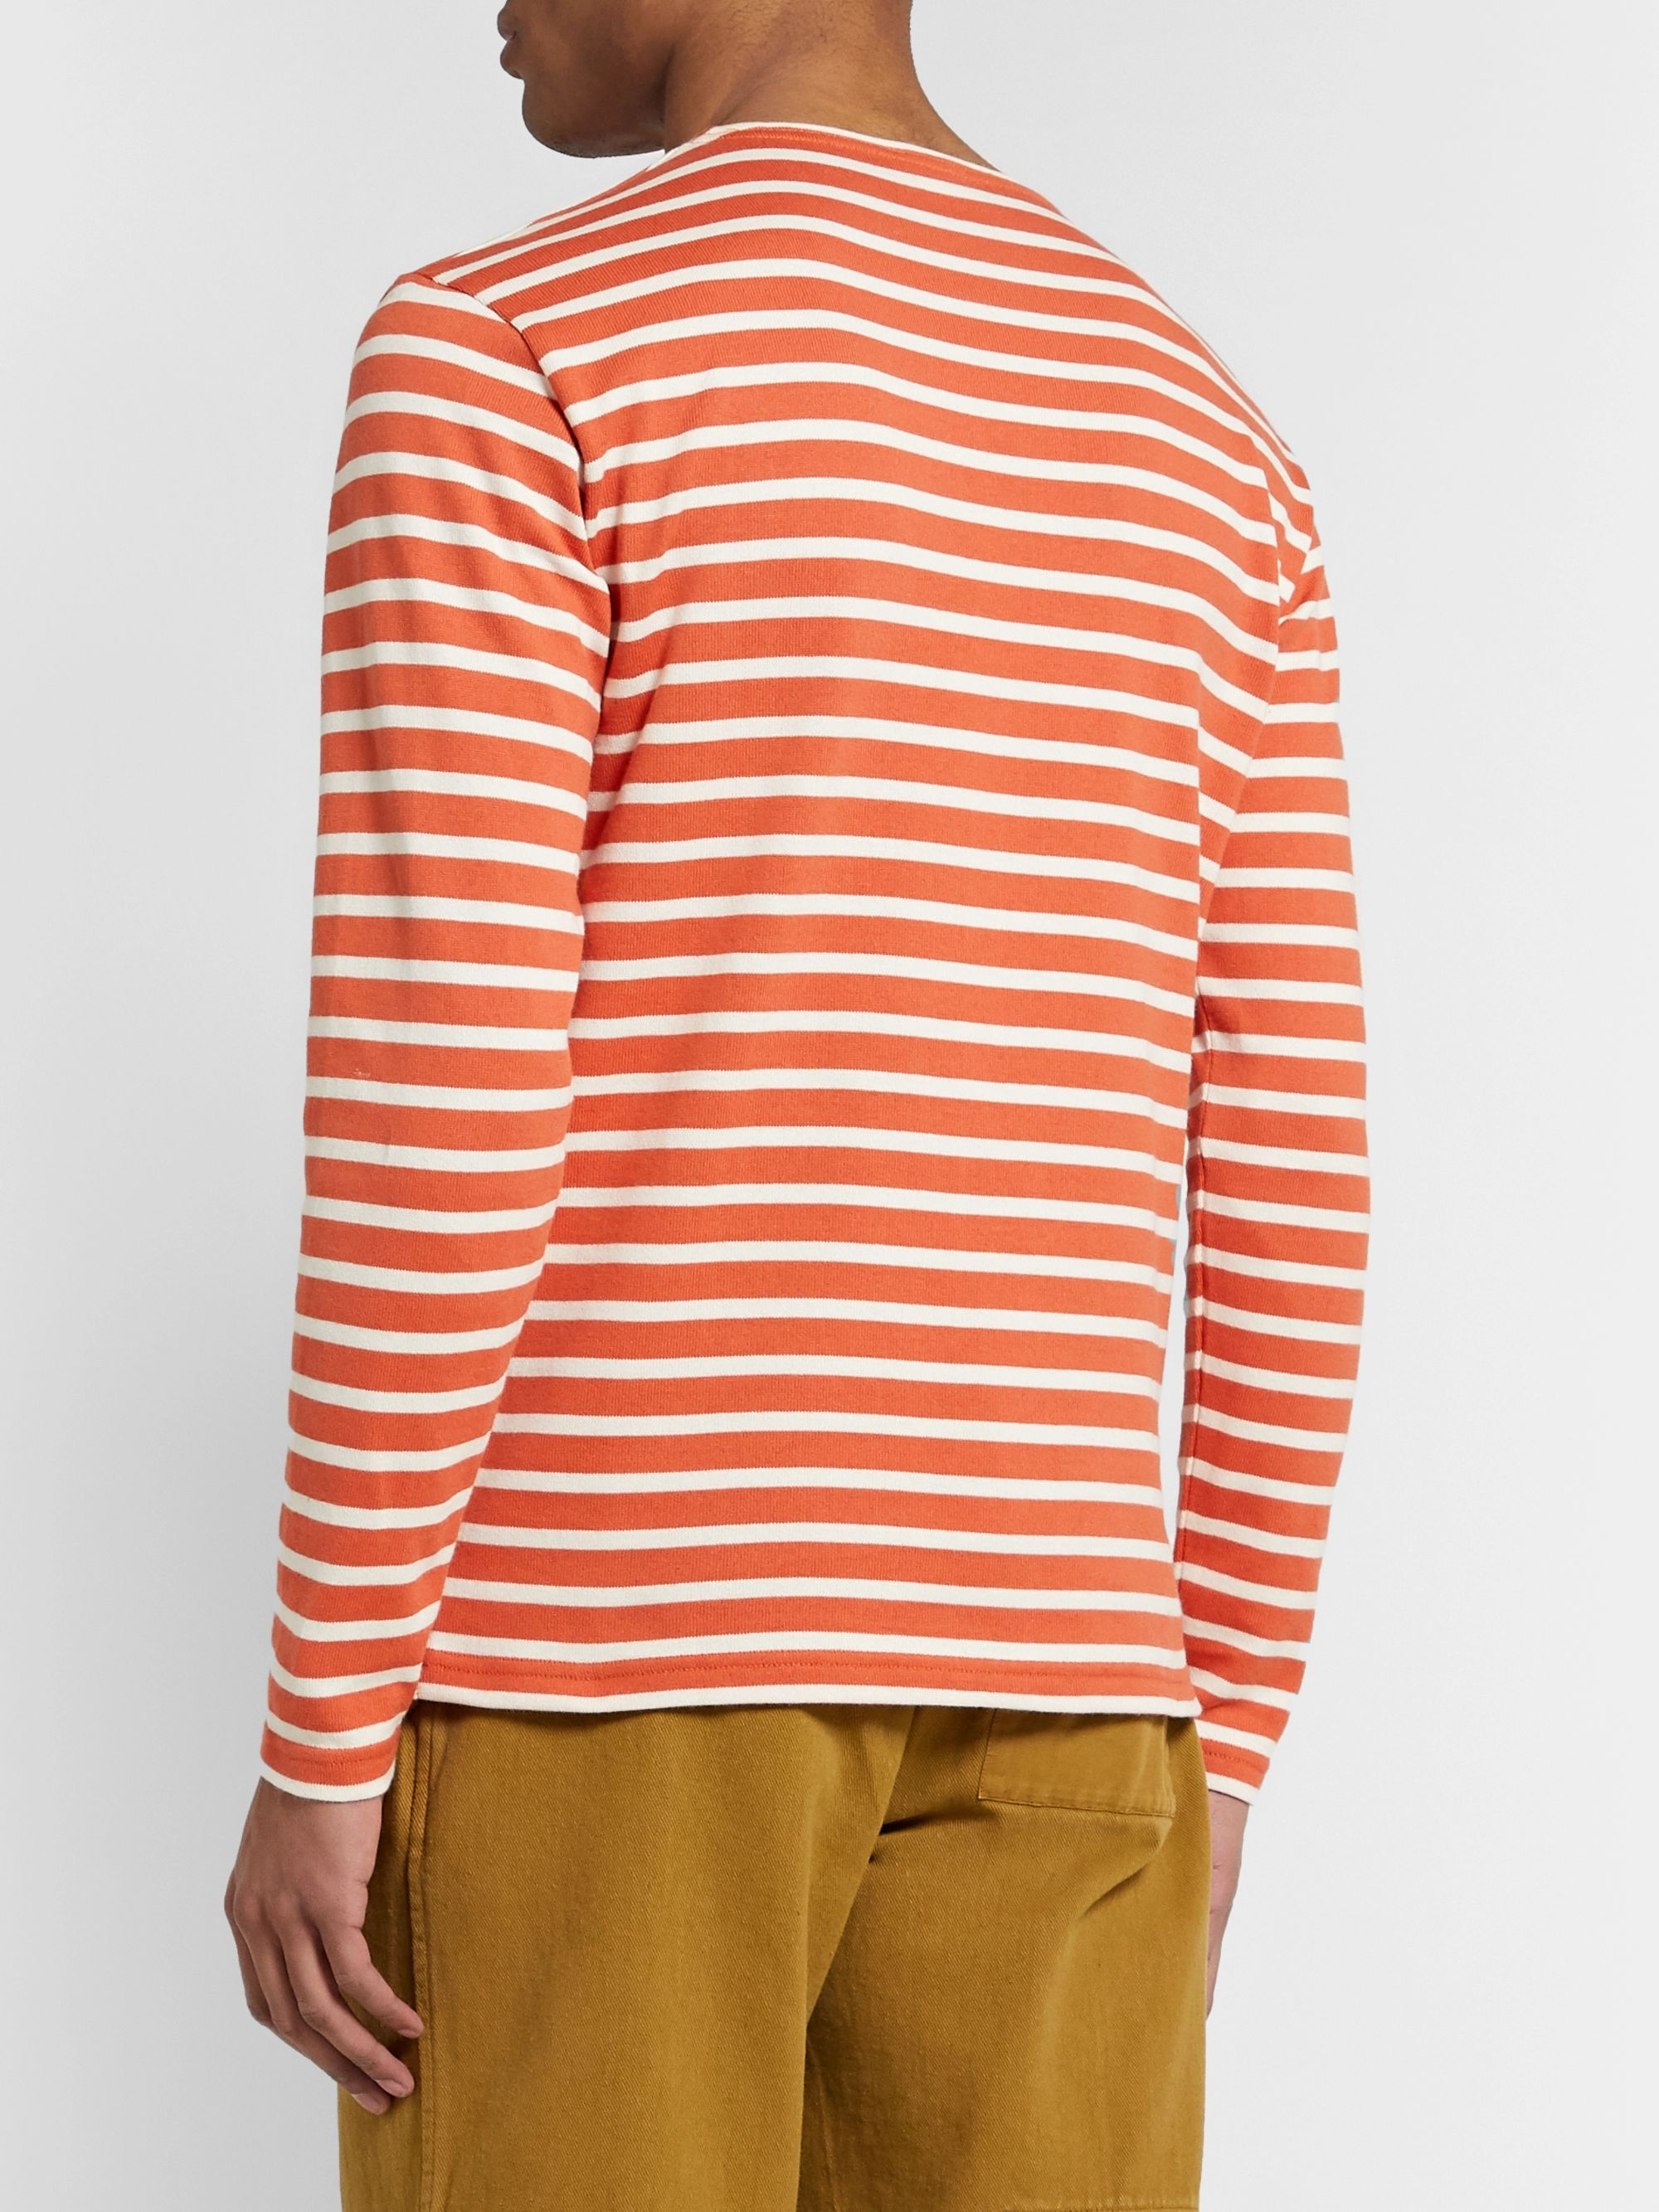 Armor Lux Striped Cotton T-Shirt